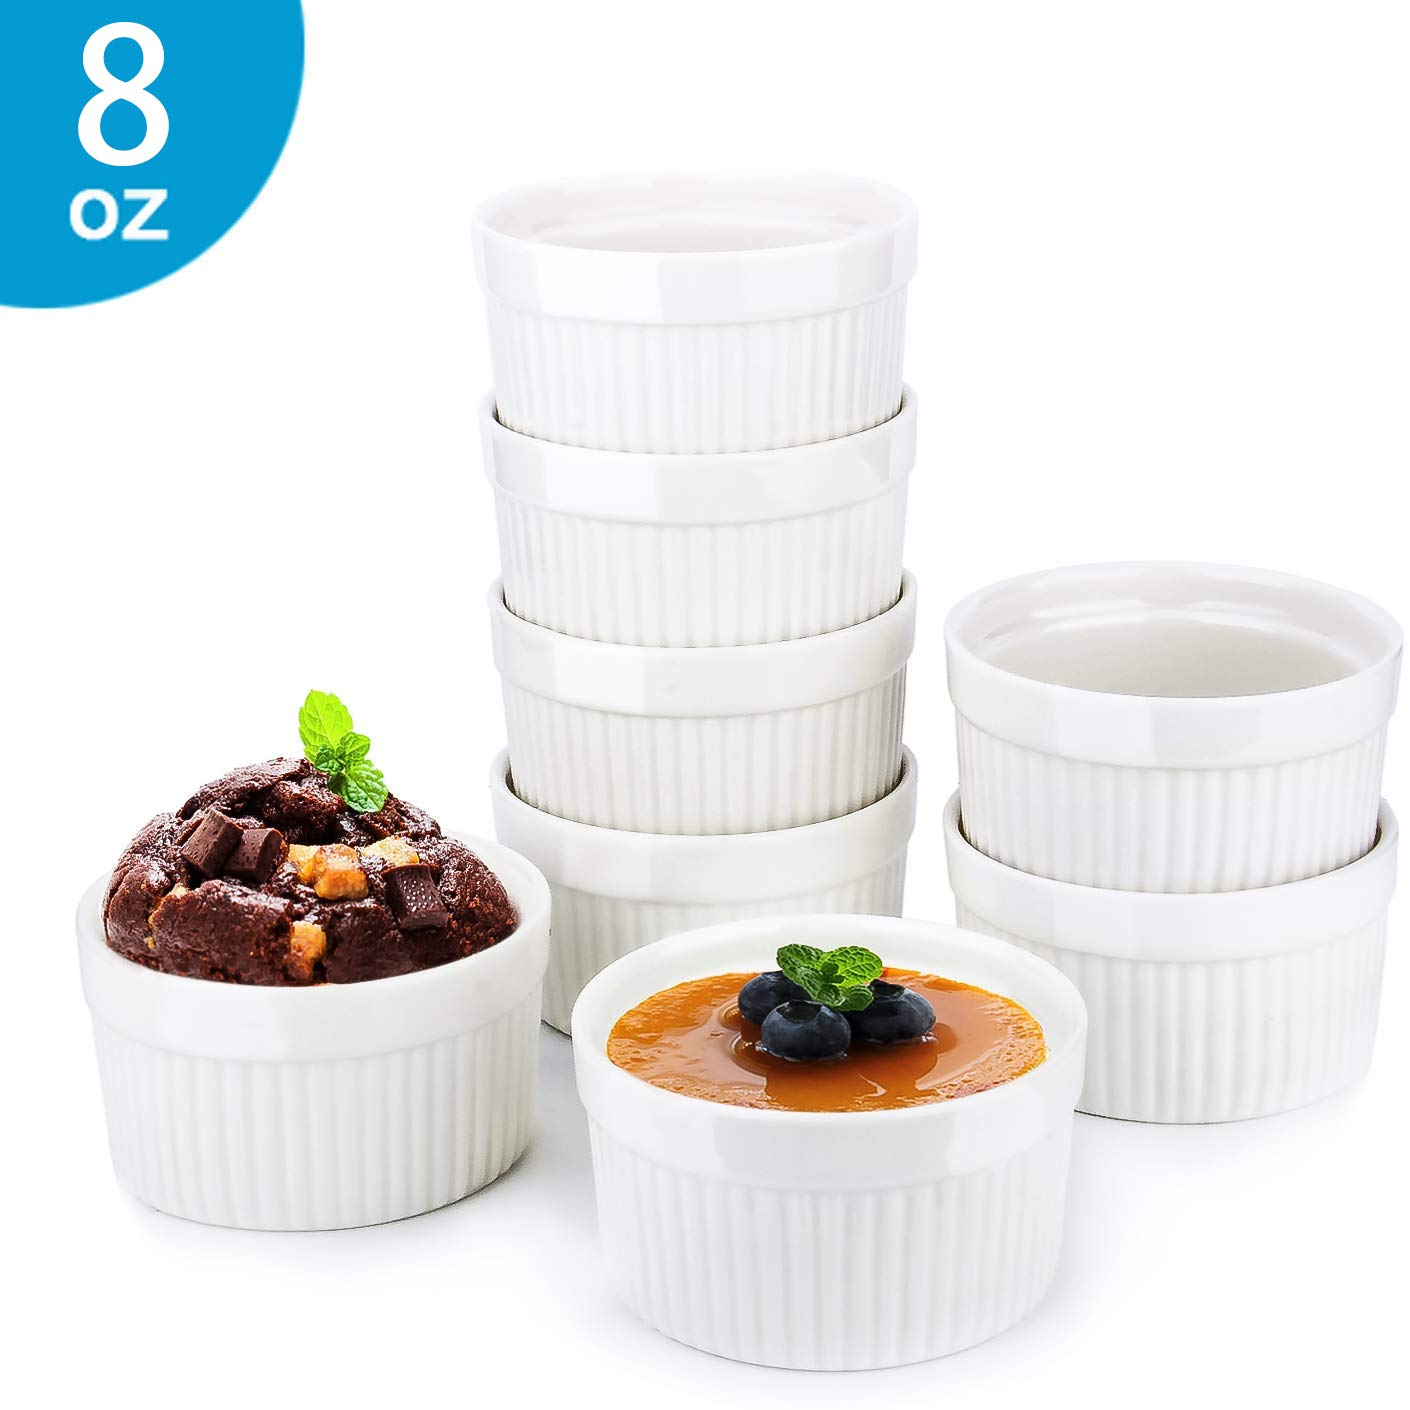 8 Oz Ramekin Bowls,8 PCS Bakeware Set for Baking and Cooking, Oven Safe Sleek Porcelain White Ramikins for Pudding, Creme Brulee, Custard Cups and Souffle Small instant table tray